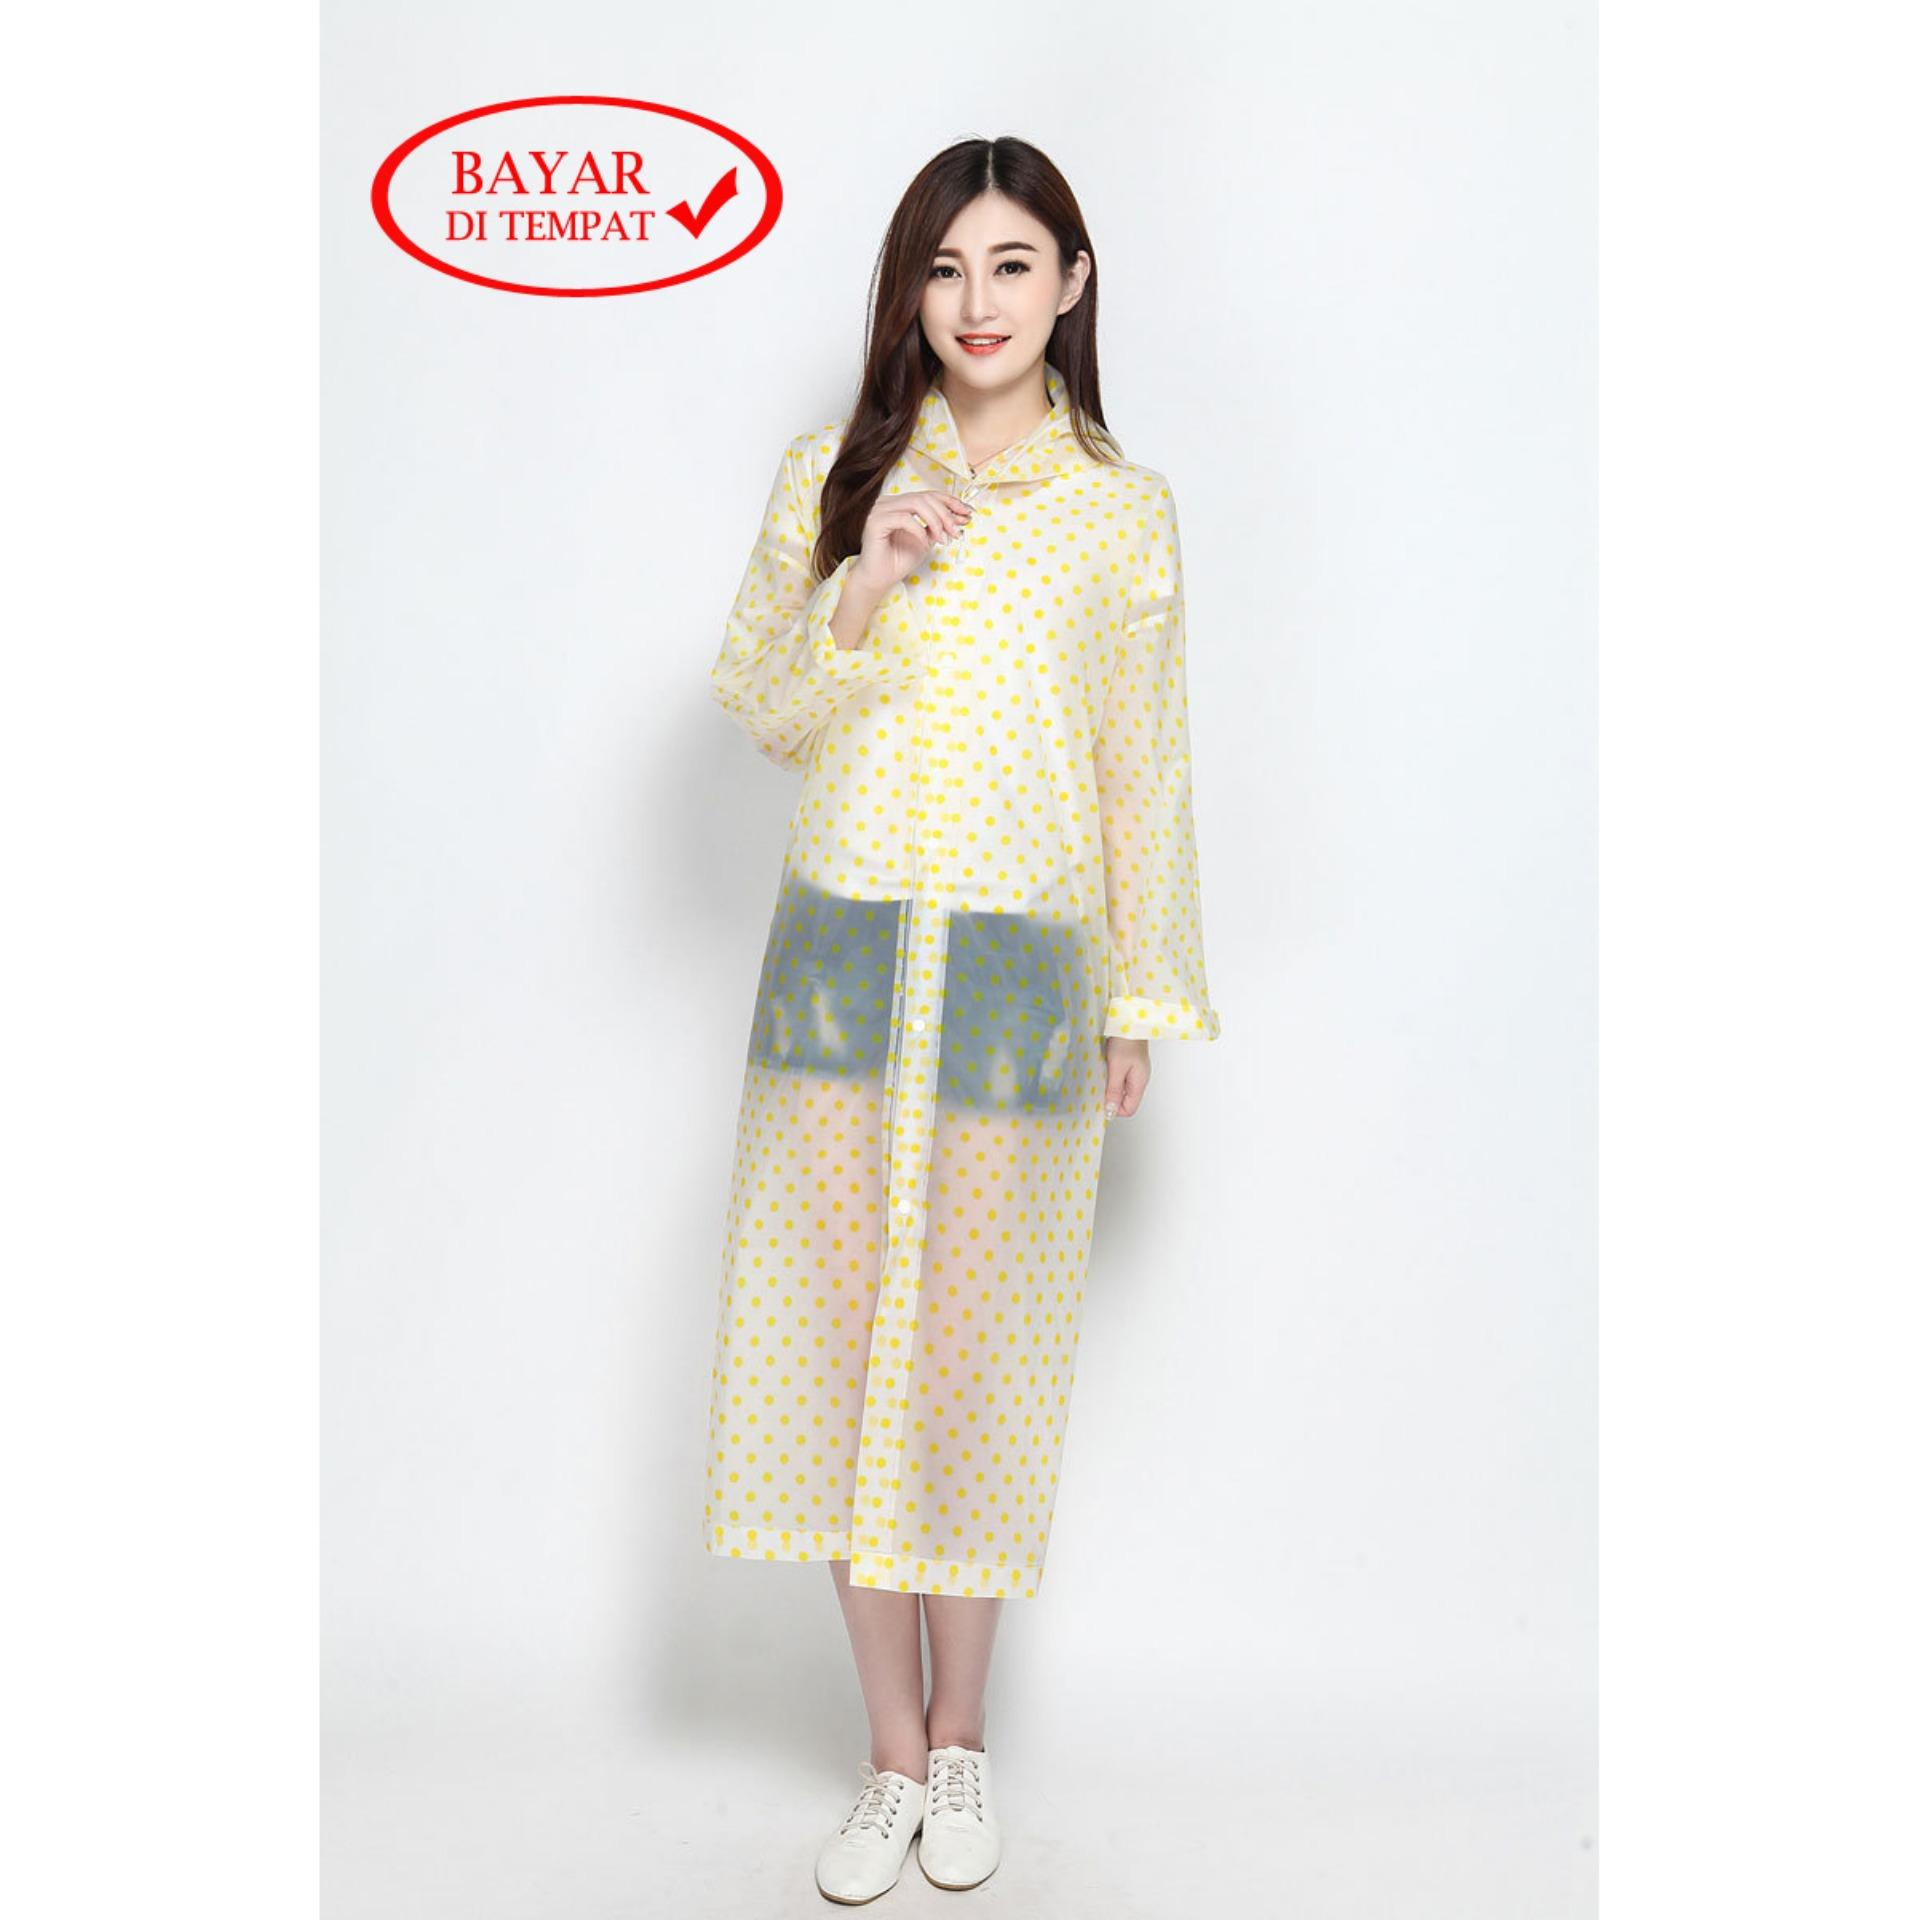 Jas Hujan Korea Plastic Polkadot Terusan Ponco Original Import By Life & Beauty.